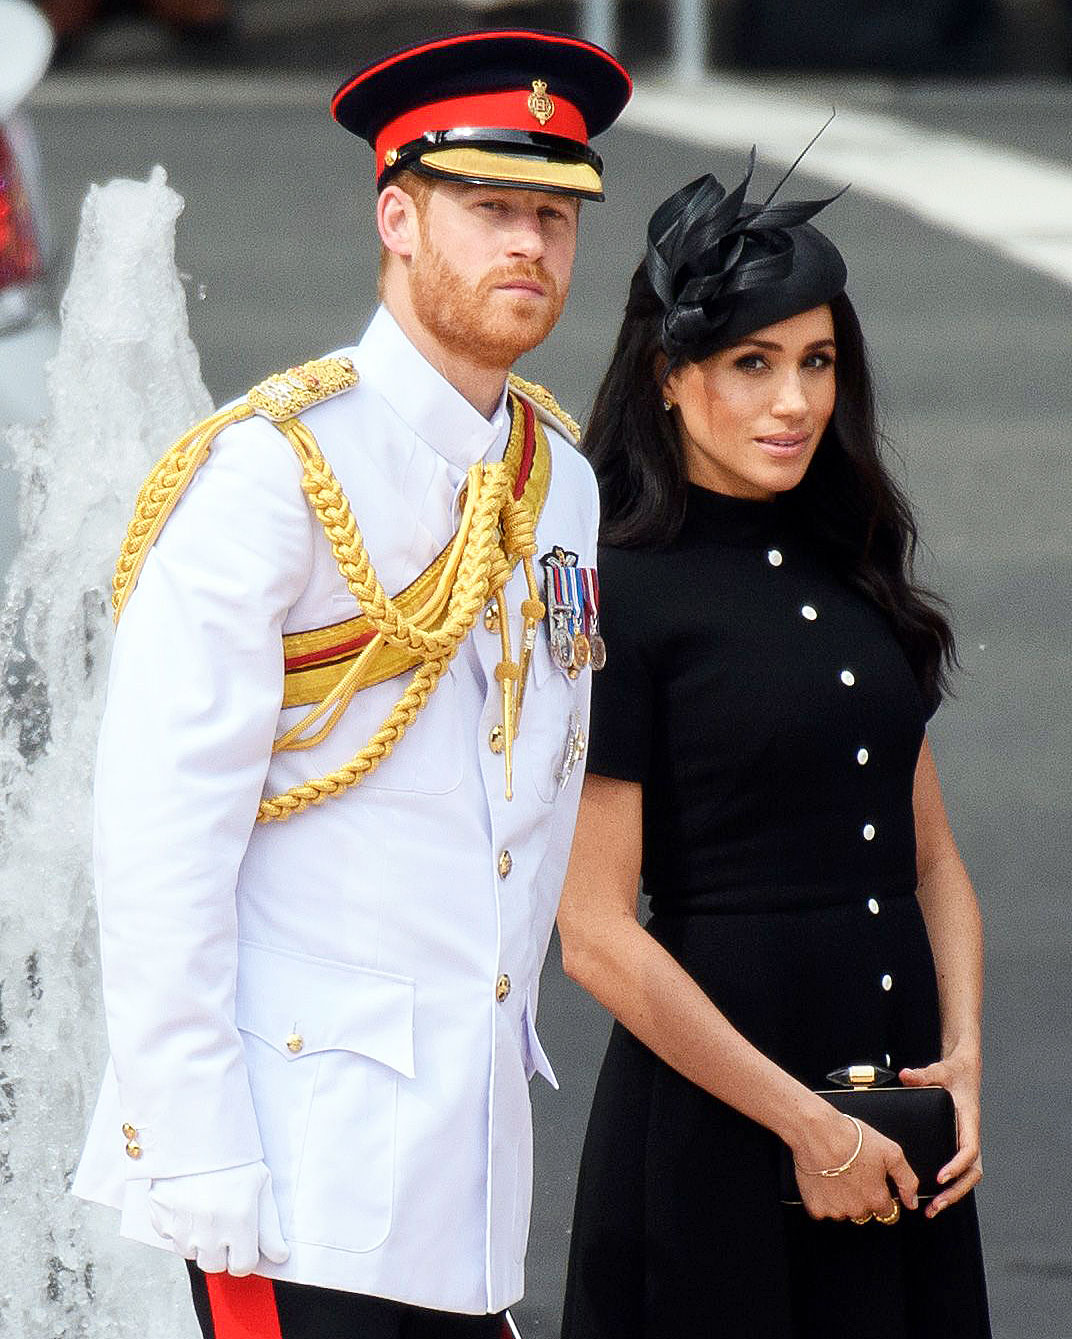 Celebs Share Support for Meghan Markle, Prince Harry Following Miscarriage